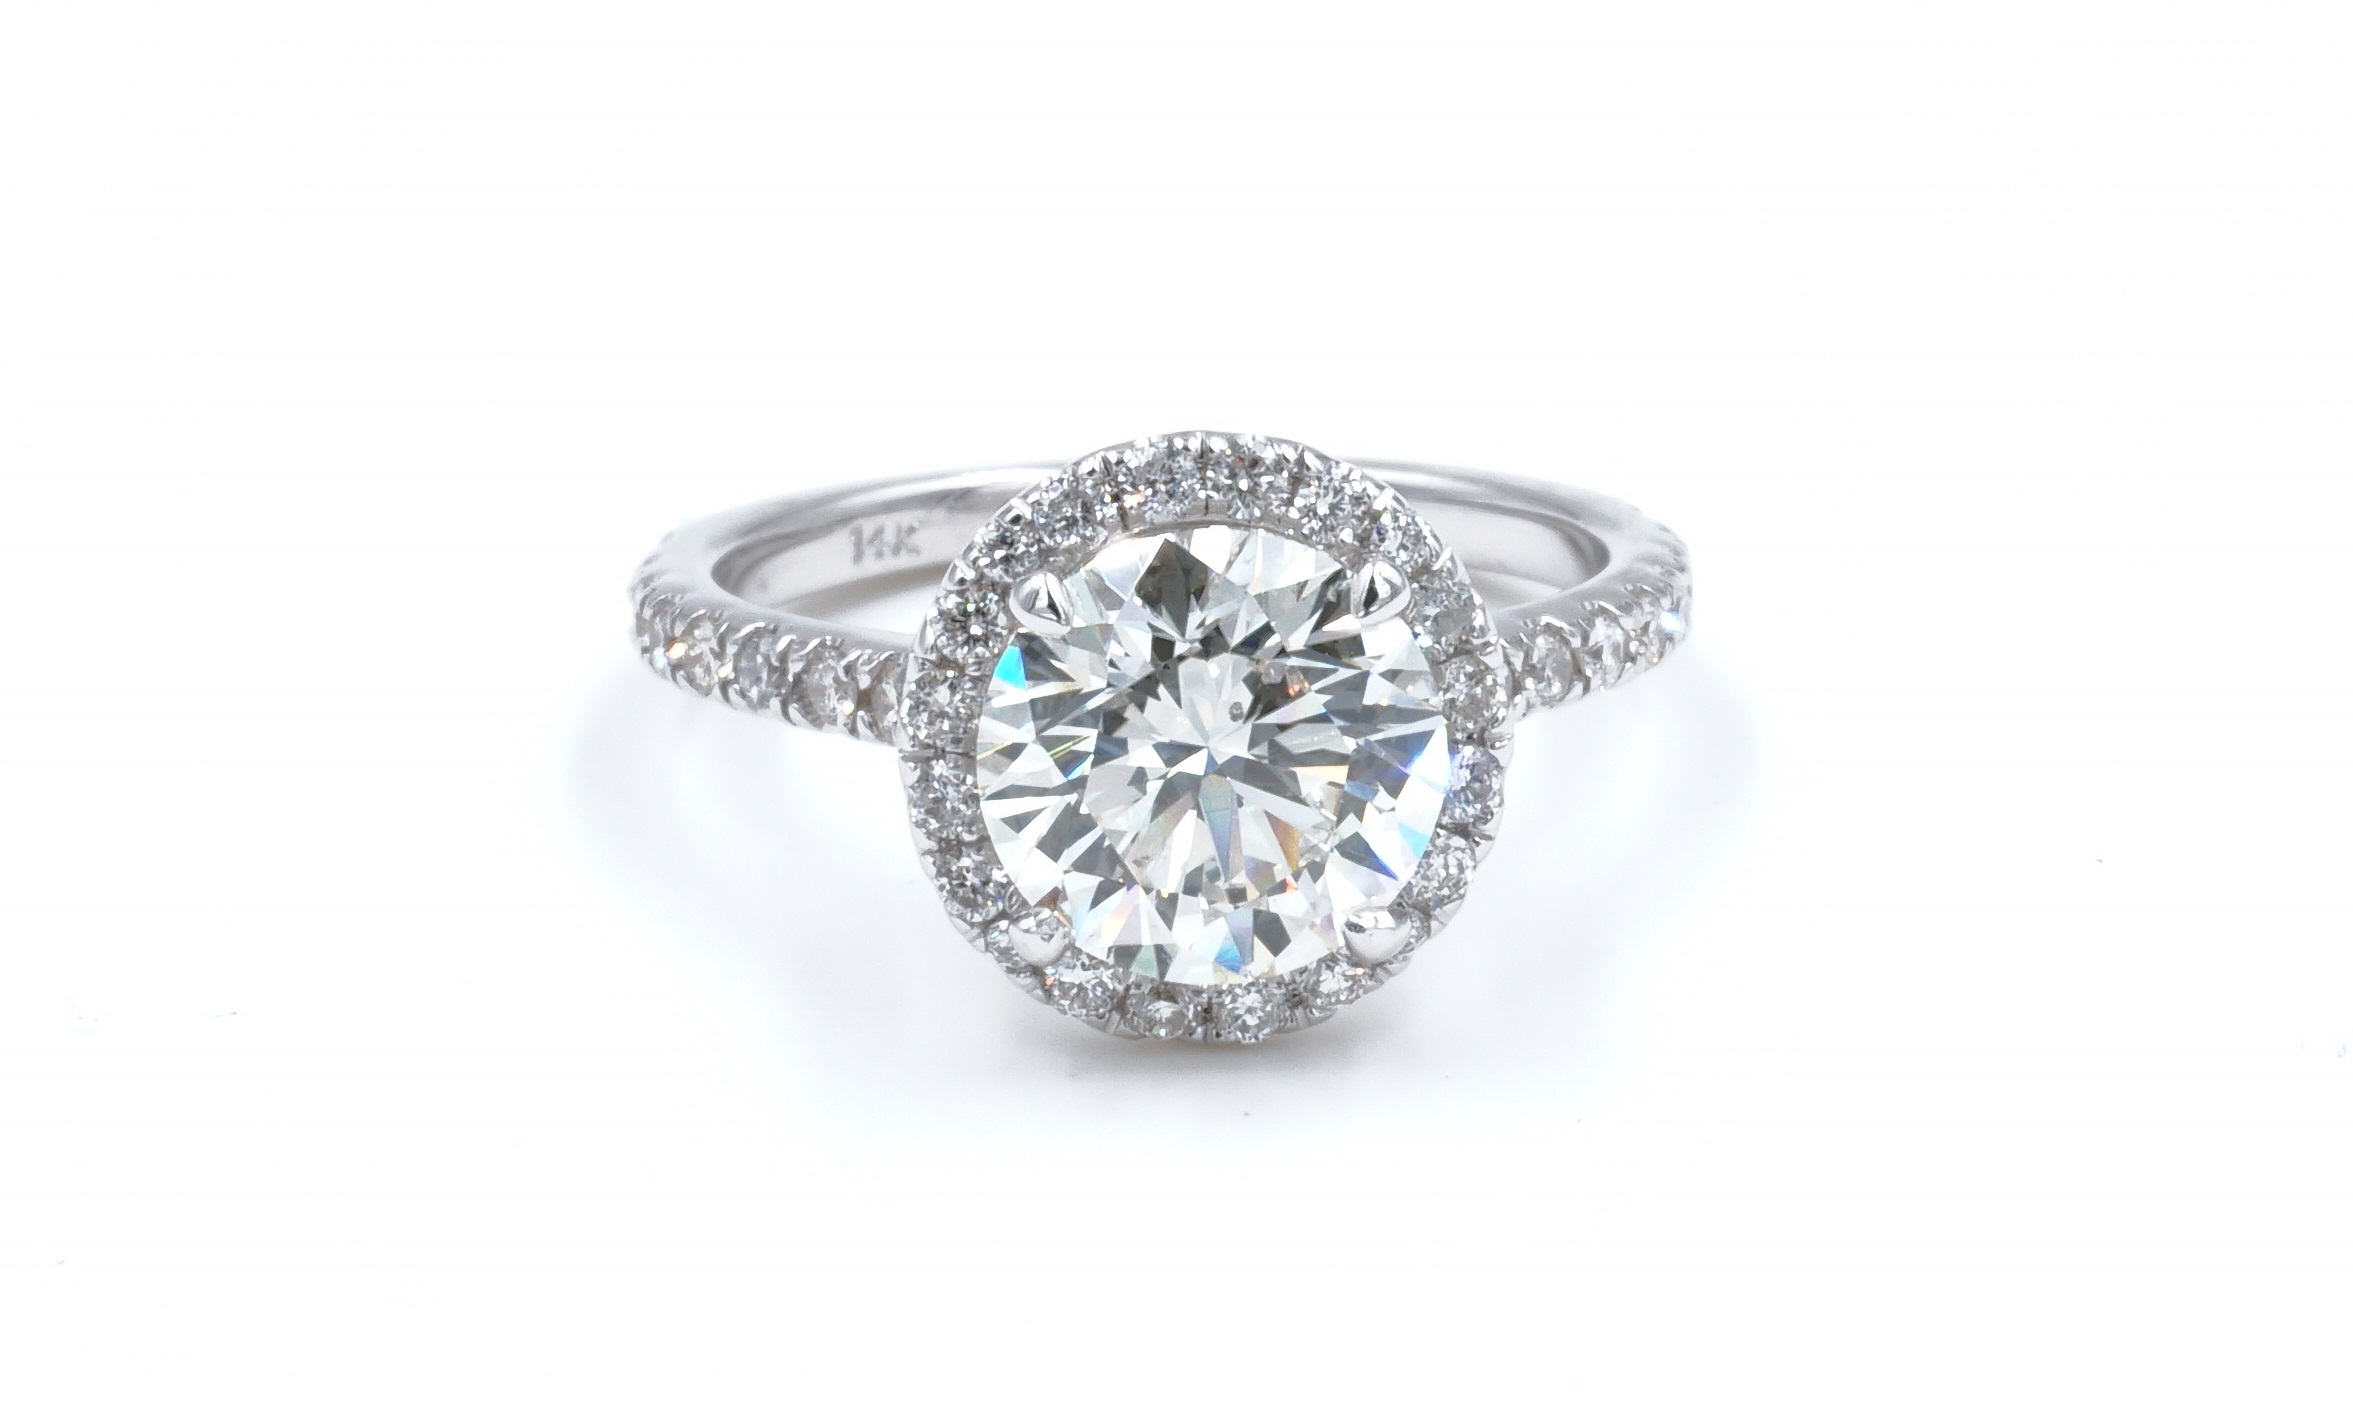 Halo Style Round Brilliant Diamond Engagement Ring